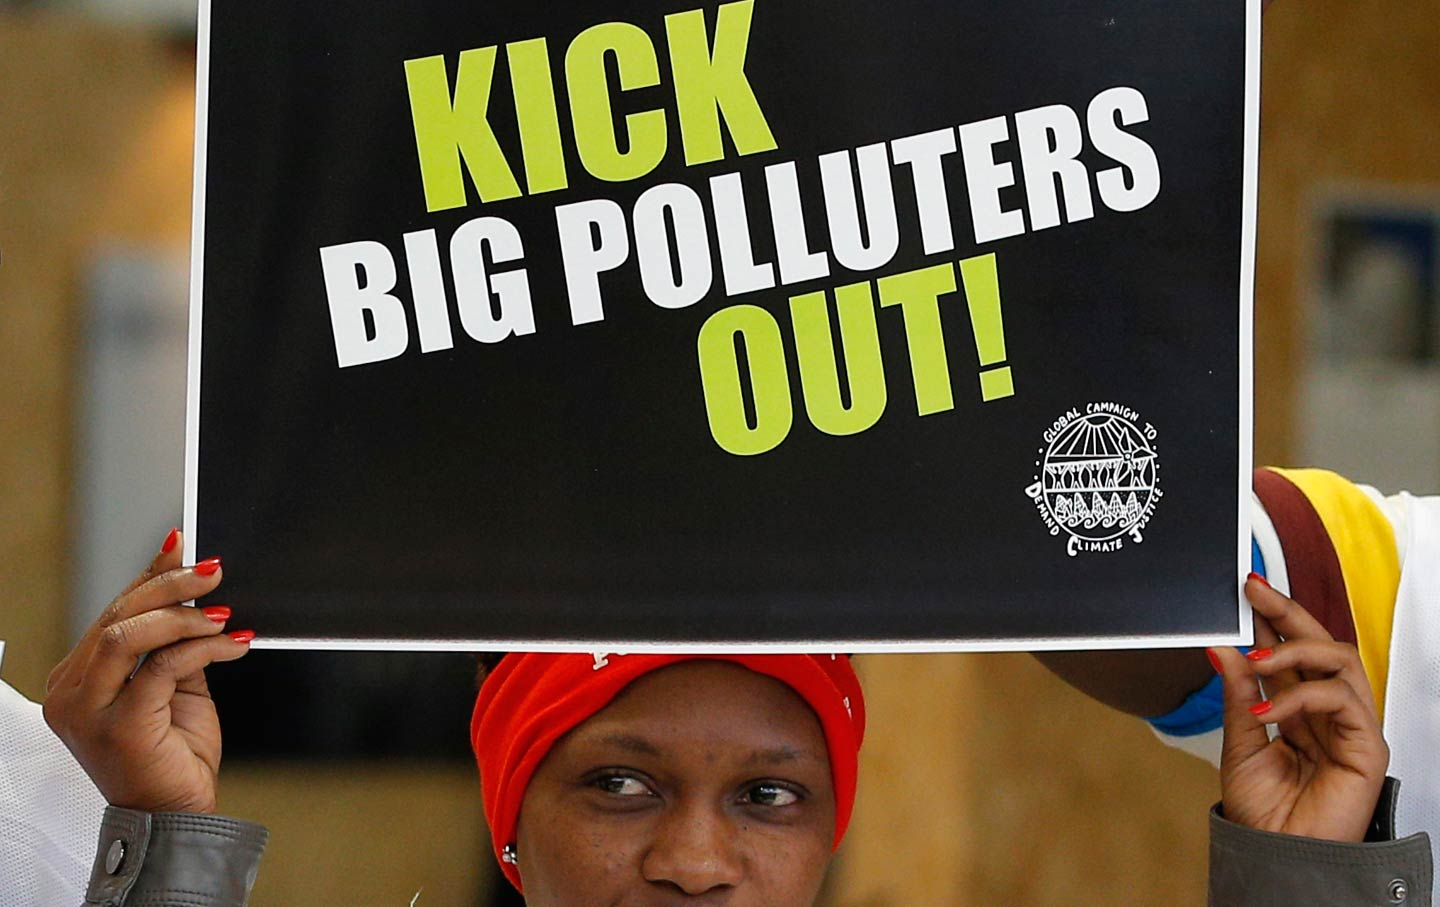 An activist protesting polluters at the Climate Generations Areas at COP21, the United Nations Climate Change Conference, Wednesday, December 2, 2015.